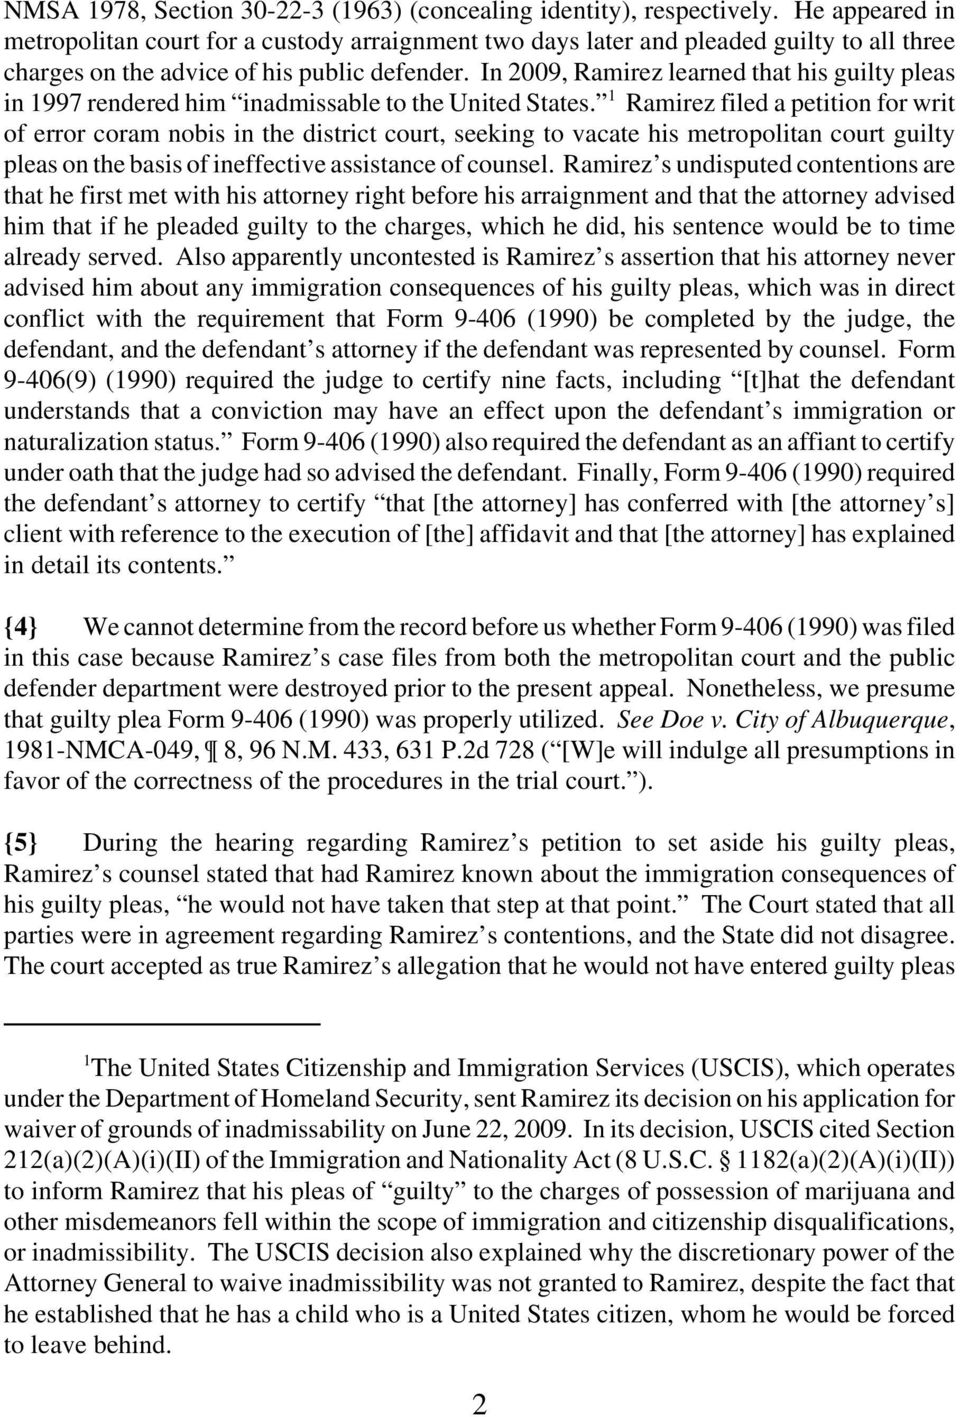 In 2009, Ramirez learned that his guilty pleas in 1997 rendered him inadmissable to the United States.